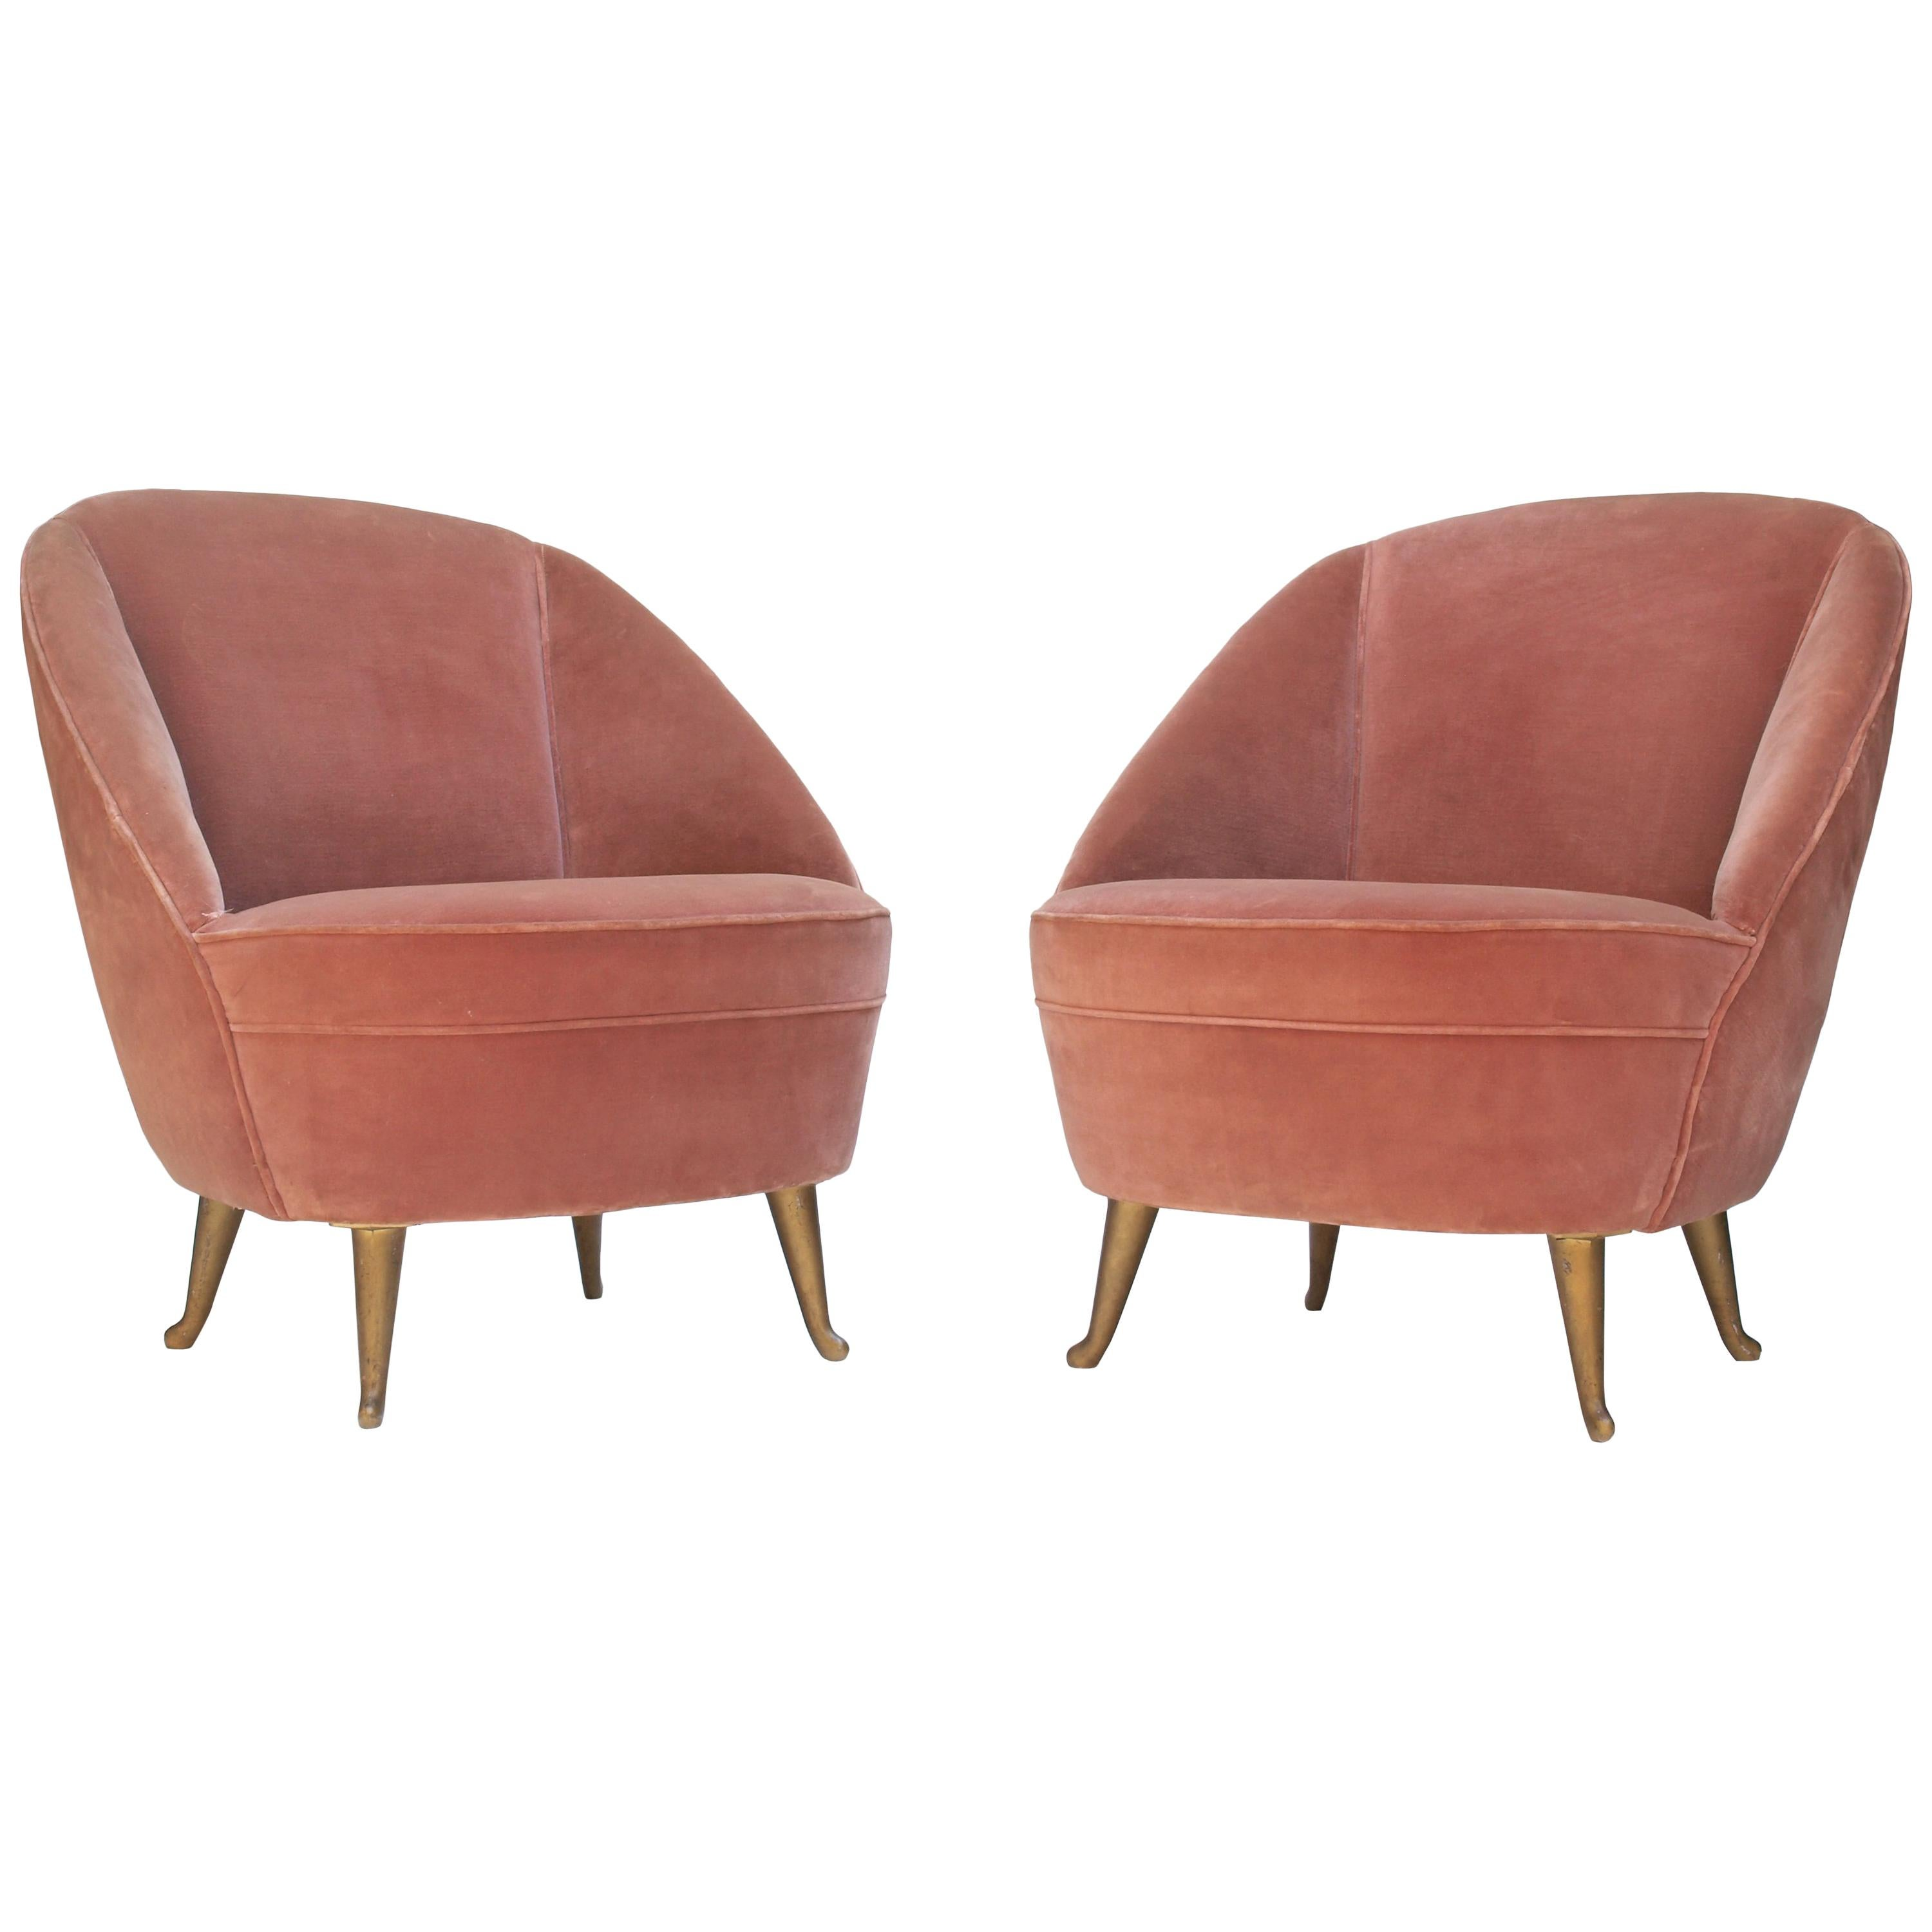 Merveilleux Pair Of Side Chairs For I.S.A Bergamo, 1950s For Sale